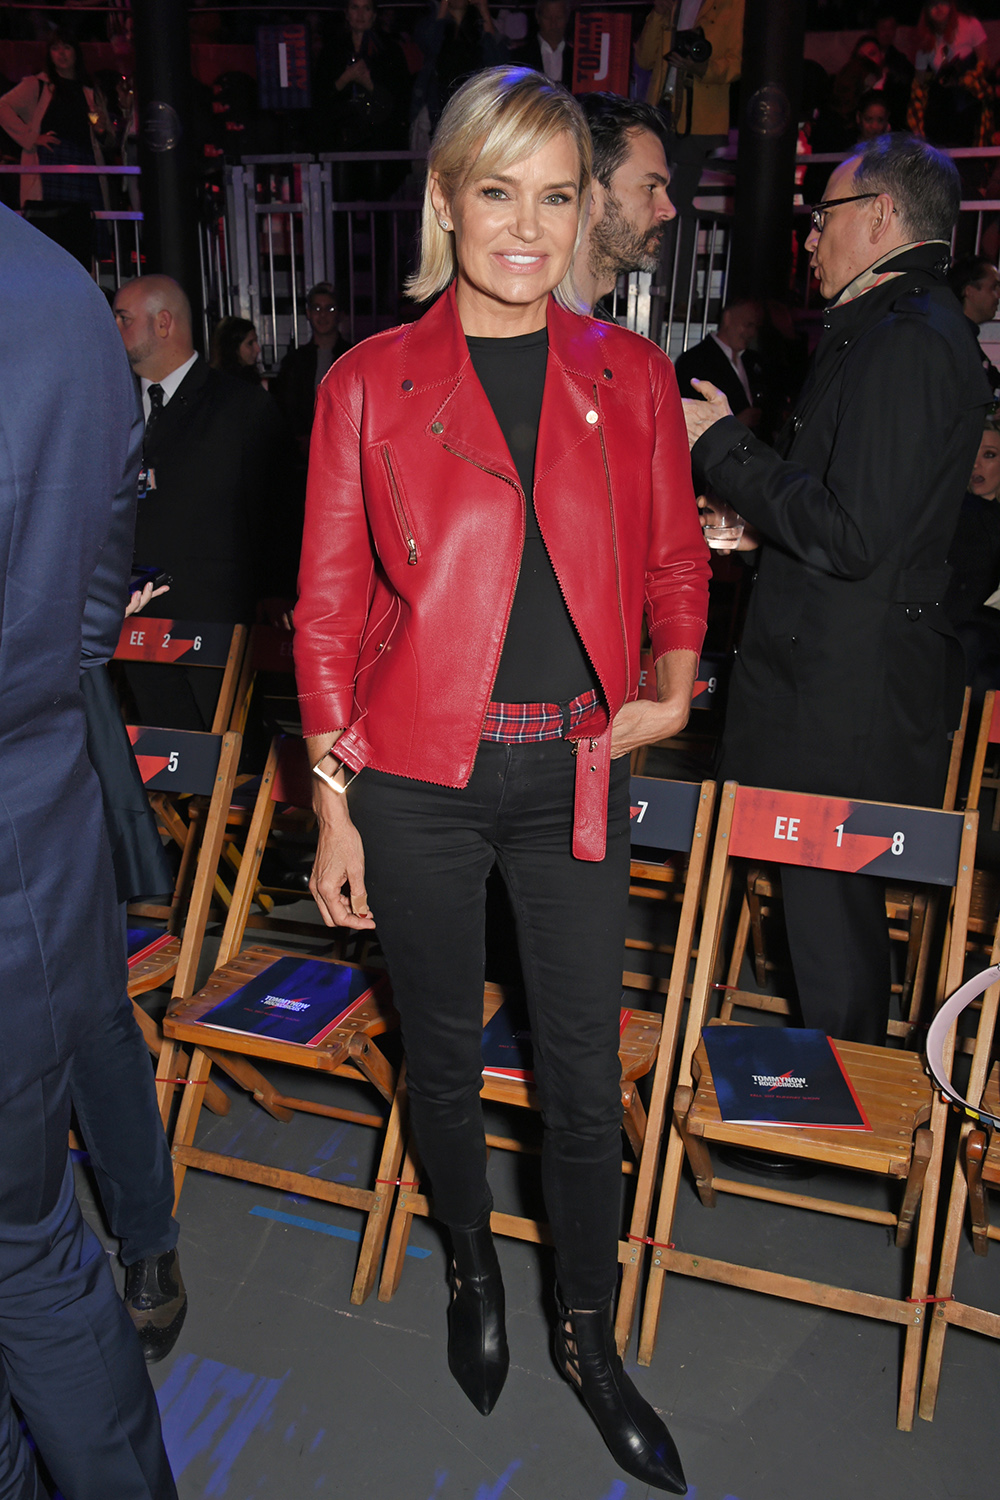 LONDON, ENGLAND - SEPTEMBER 19:  Yolanda Hadid attends the Tommy Hilfiger TOMMYNOW Fall 2017 Show during London Fashion Week September 2017 at The Roundhouse on September 19, 2017 in London, England.  (Photo by David M. Benett/Dave Benett/Getty Images for